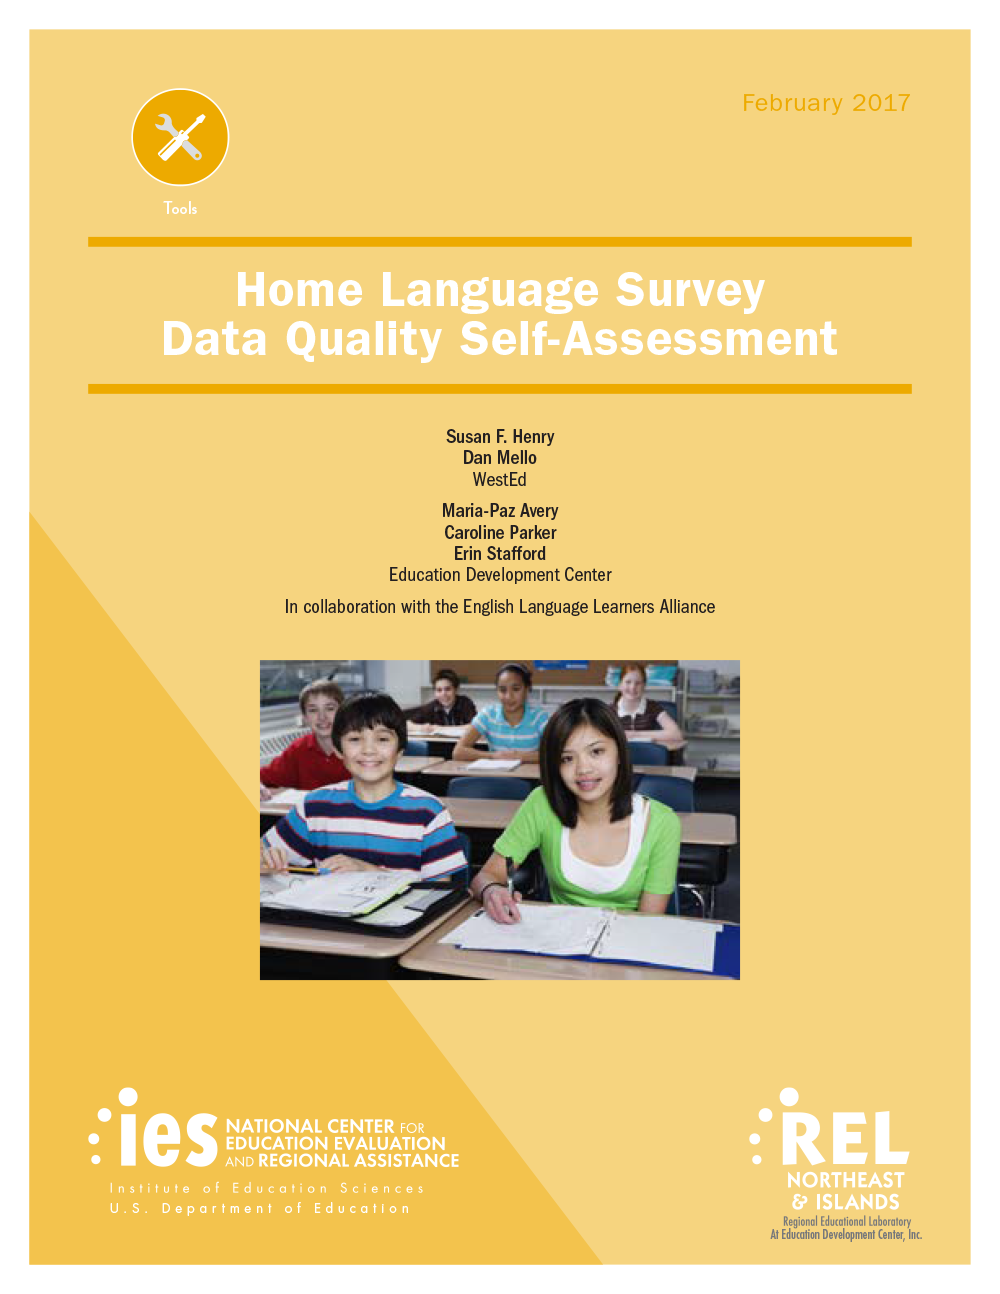 Home Language Study Data Quality Self-Assessment